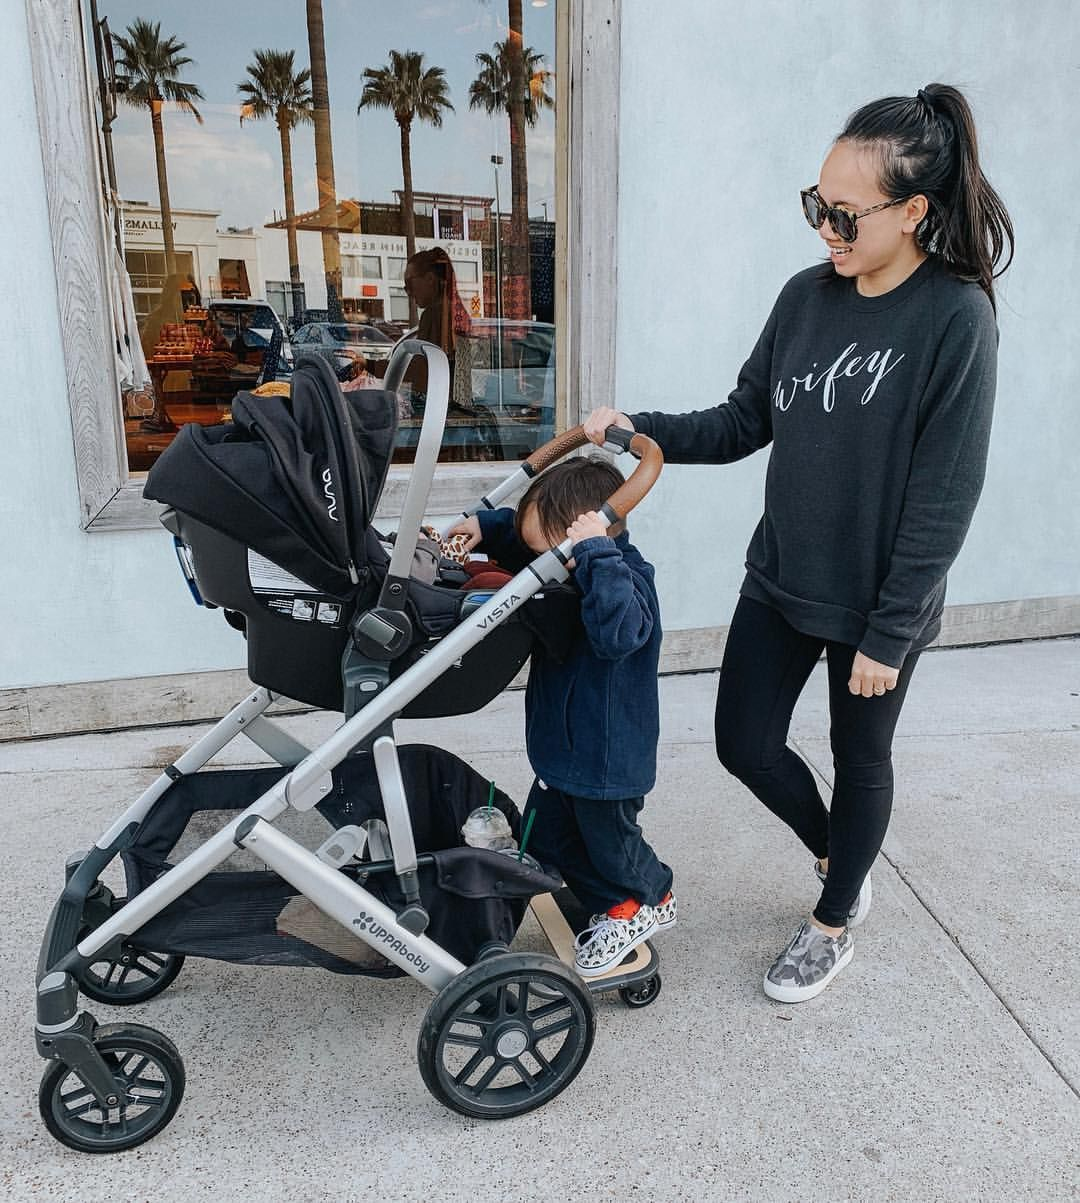 Nuna Stroller Unfold My Idea Of A Comfy Mom Outfit We Love Our Nuna Car Seat And